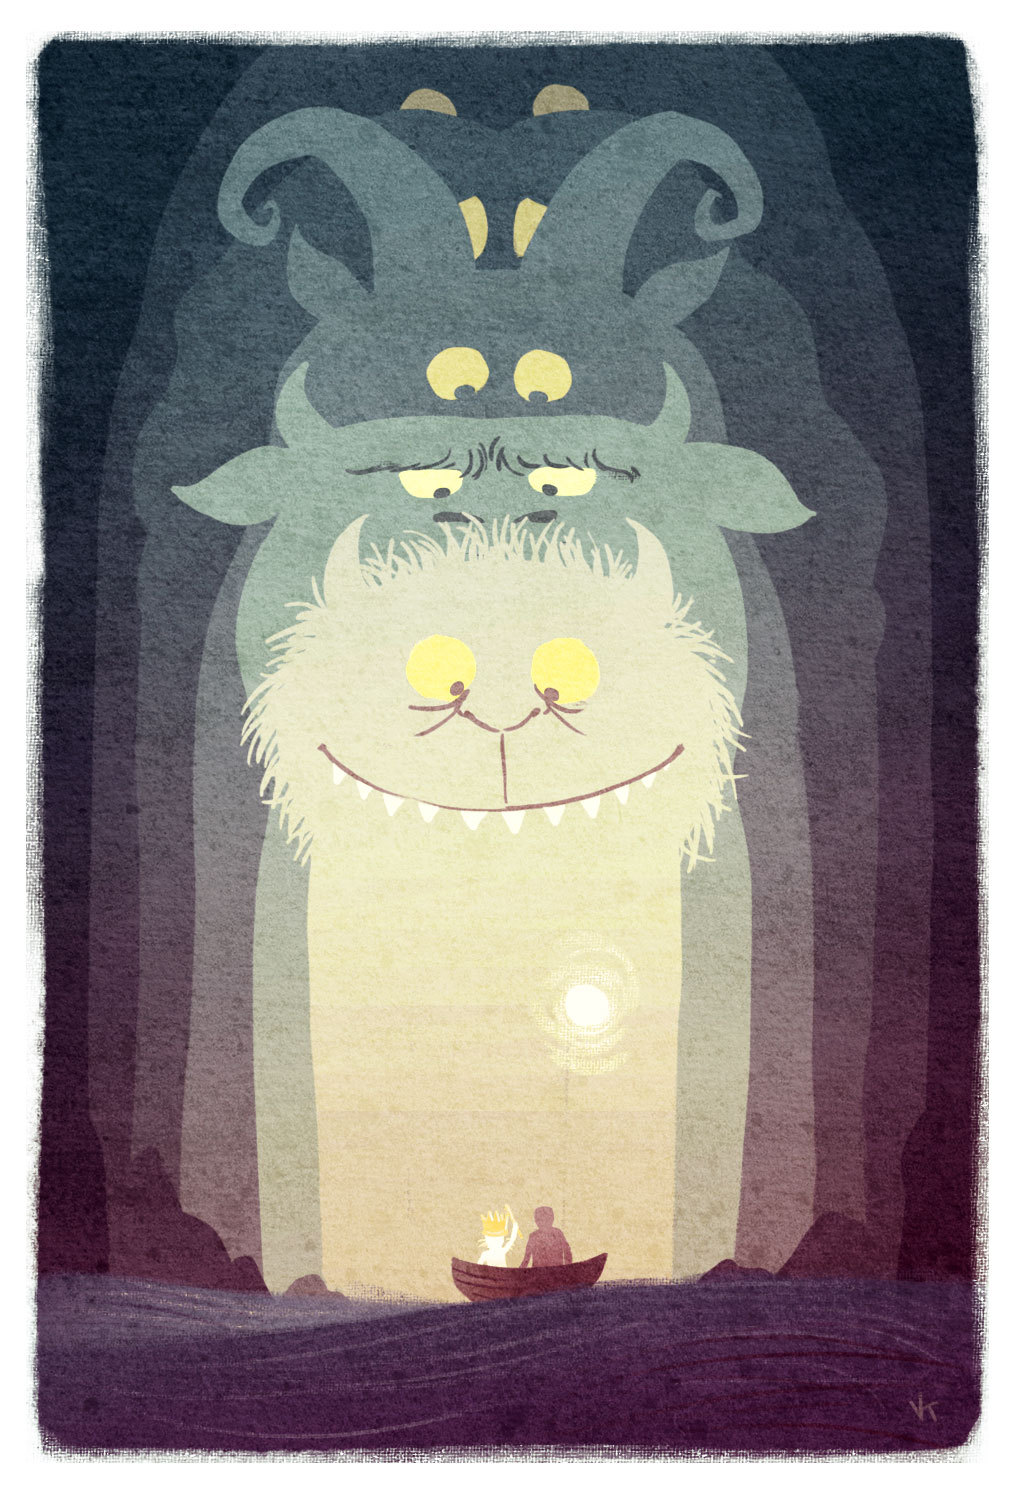 Farewell Maurice Sendak. Your imagination inspired so many…and my childhood was richer for it.